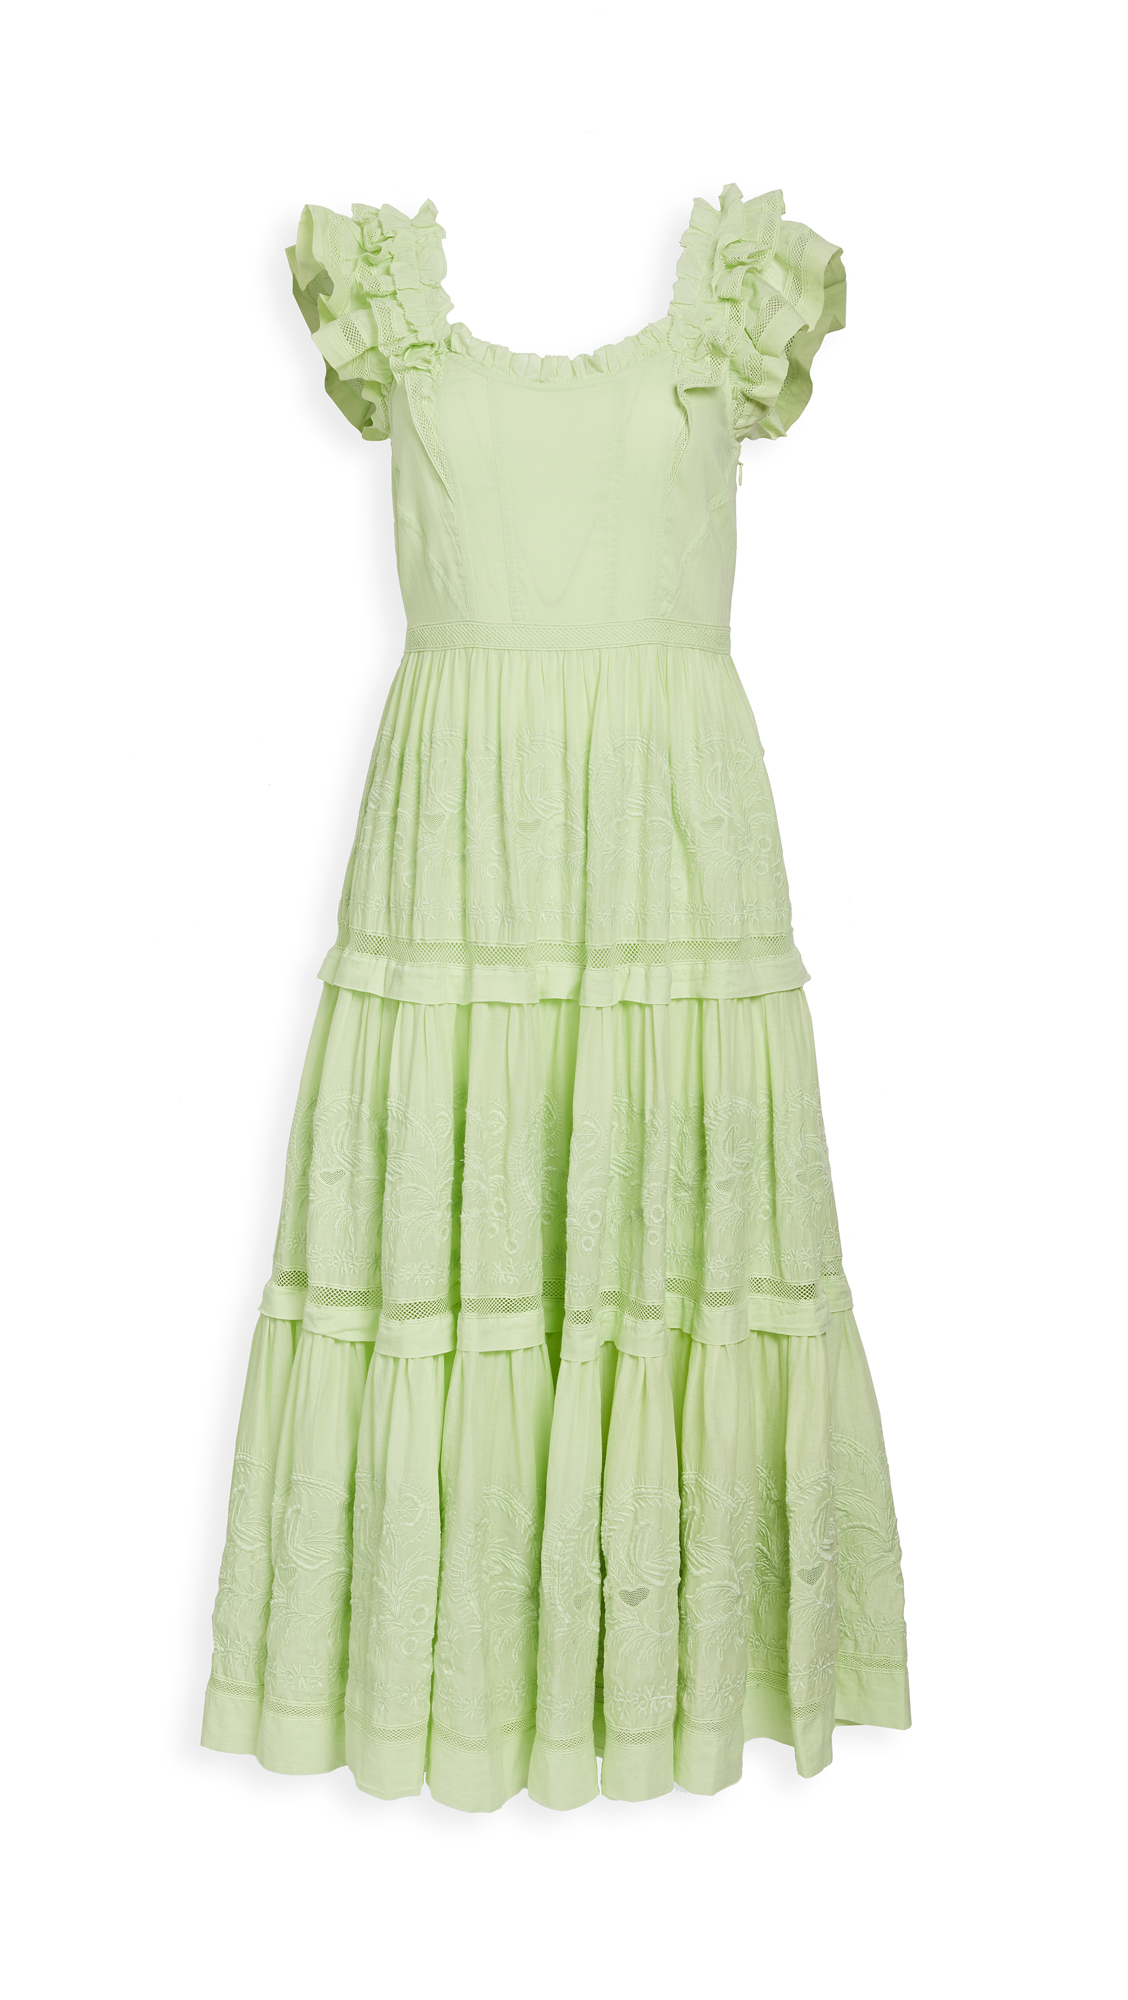 Ulla Johnson Julietta Dress - 30% Off Sale